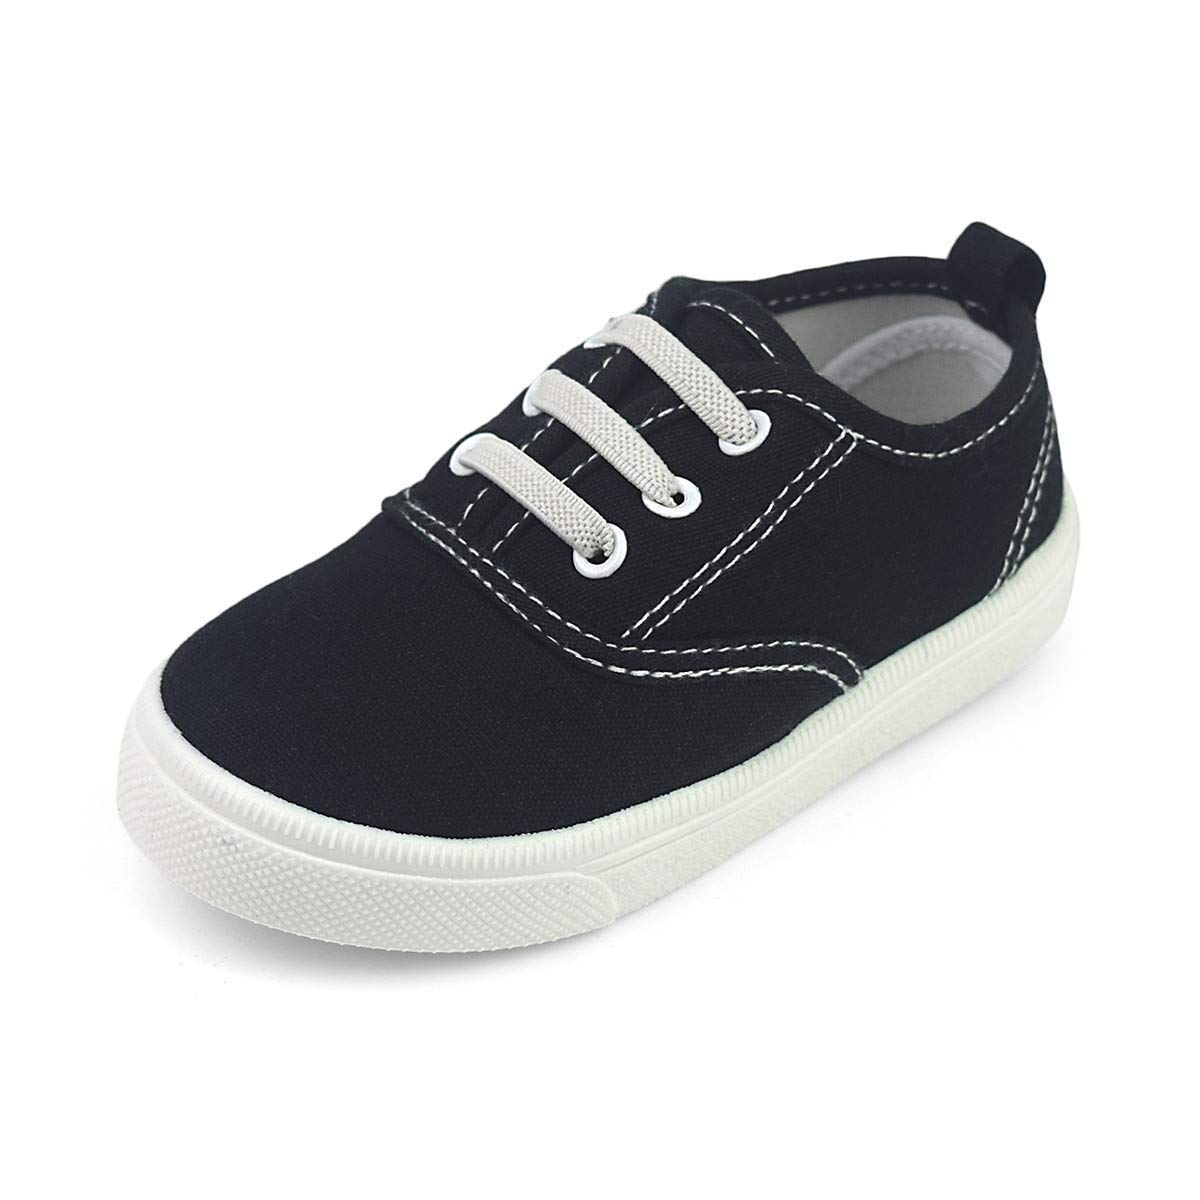 Toddler Boys Girls Canvas Sneaker Lace Up Slip-on Casual Fashion Shoes